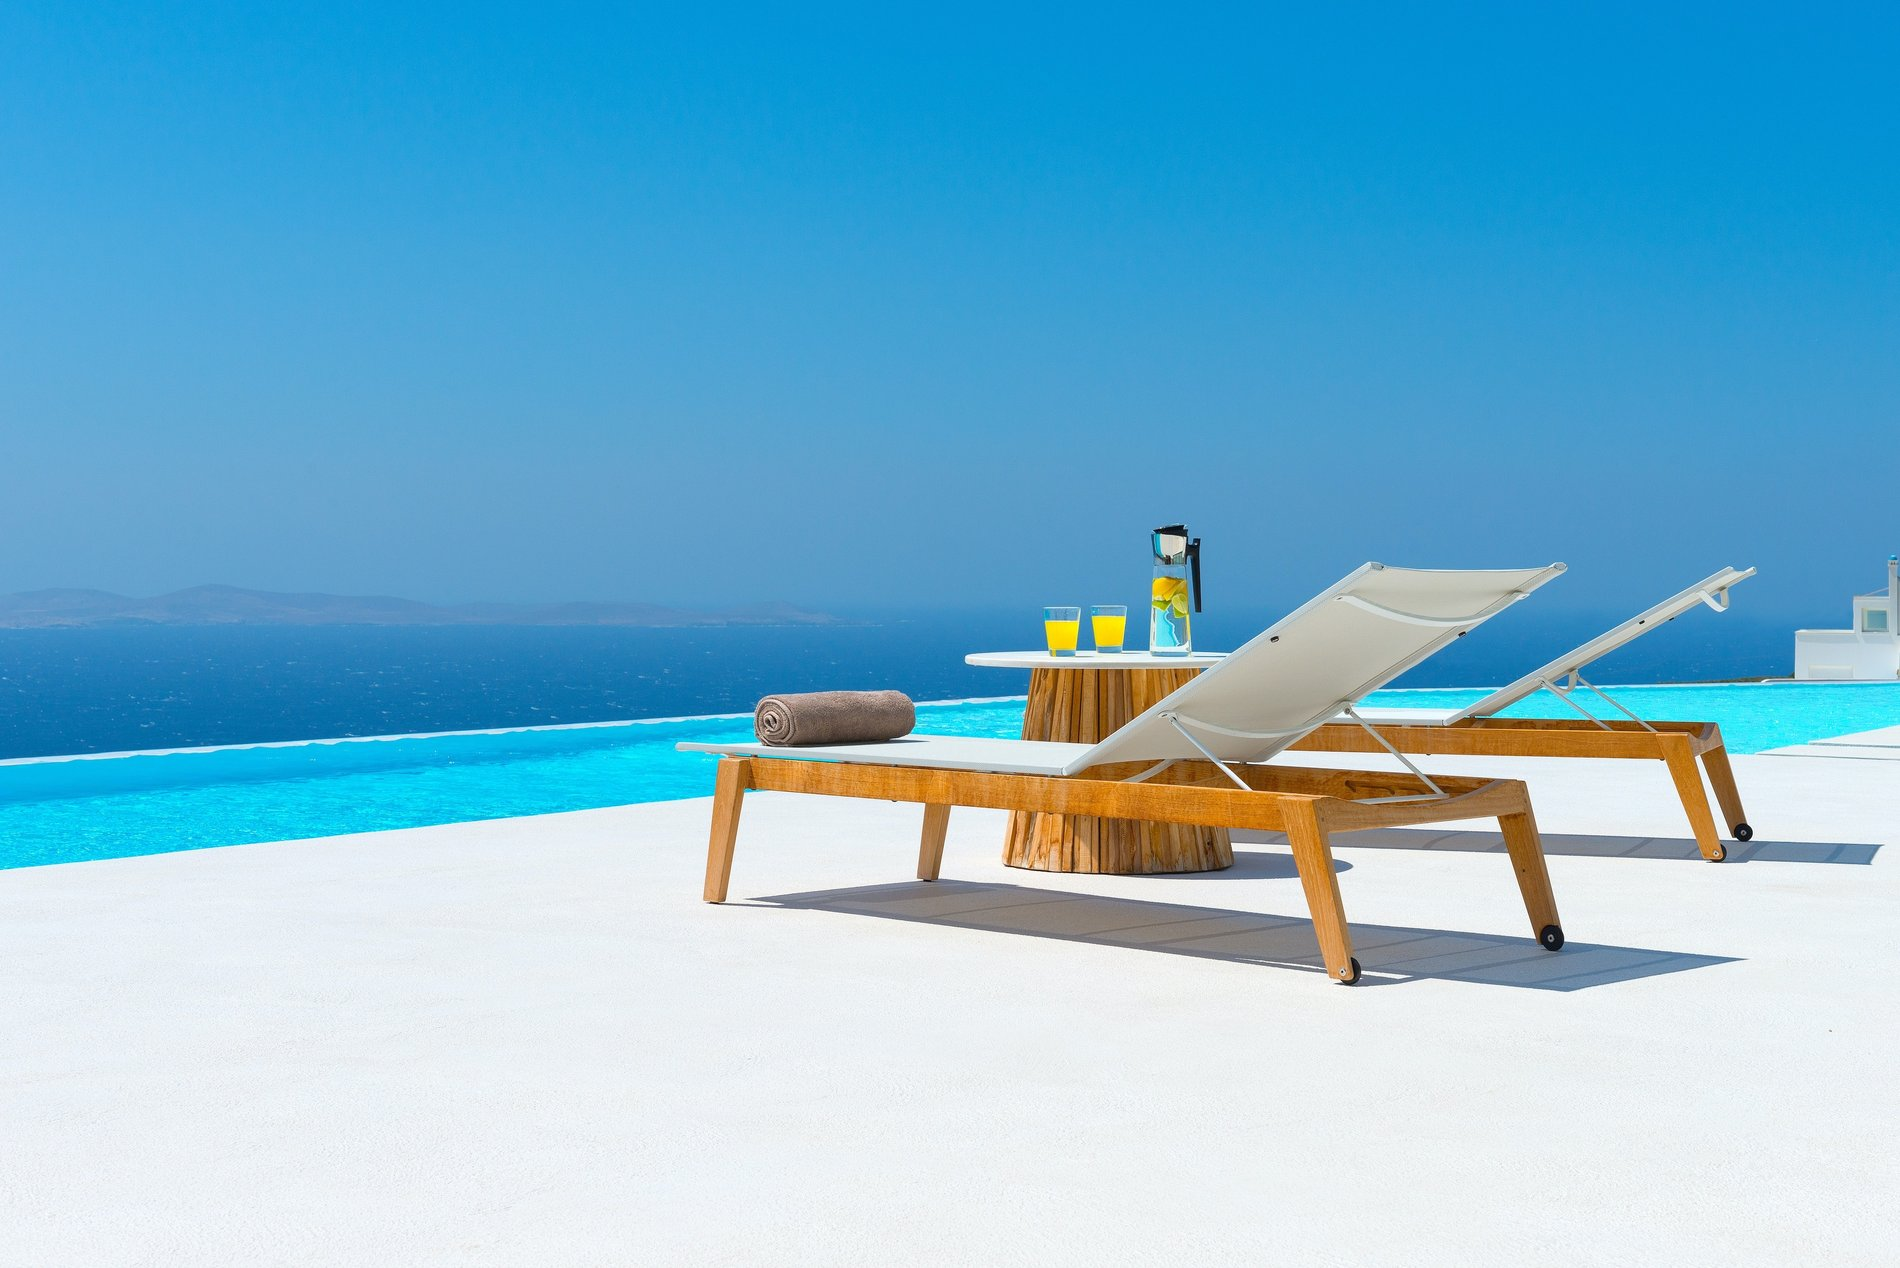 Poolside seating. view from the infinty edge pool of Greece.